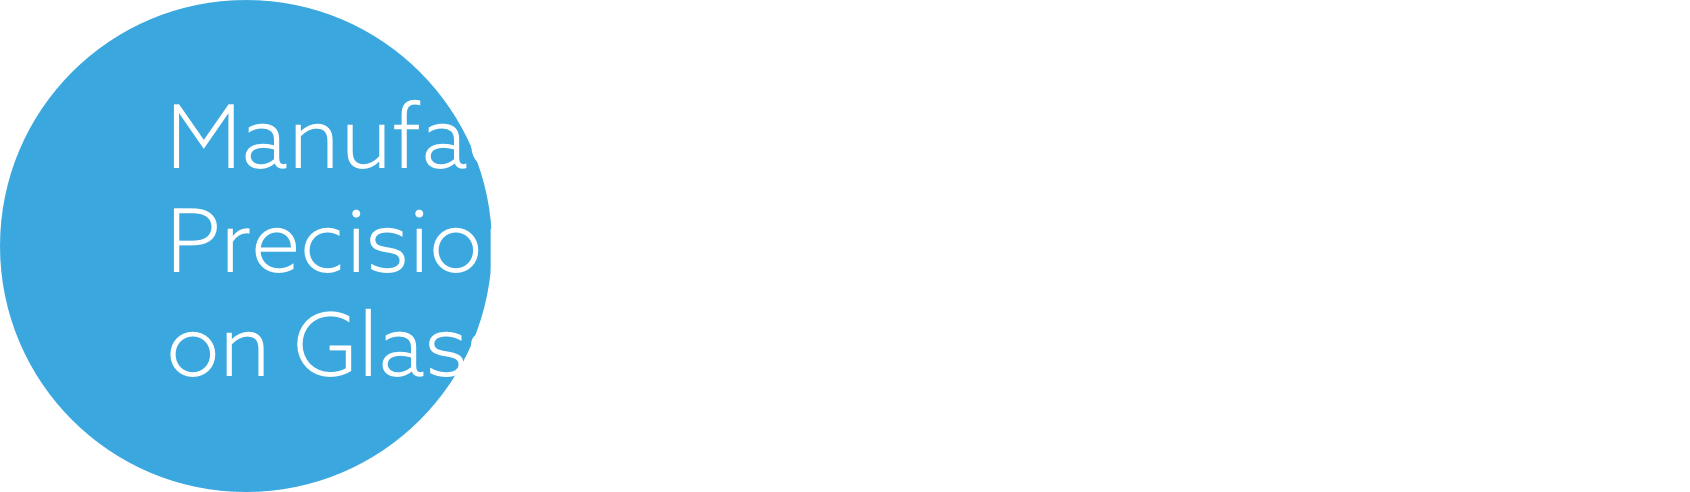 Manufacturer of Reticles and Precision Photolithographic Products on Glass, Film and in Metal Foil